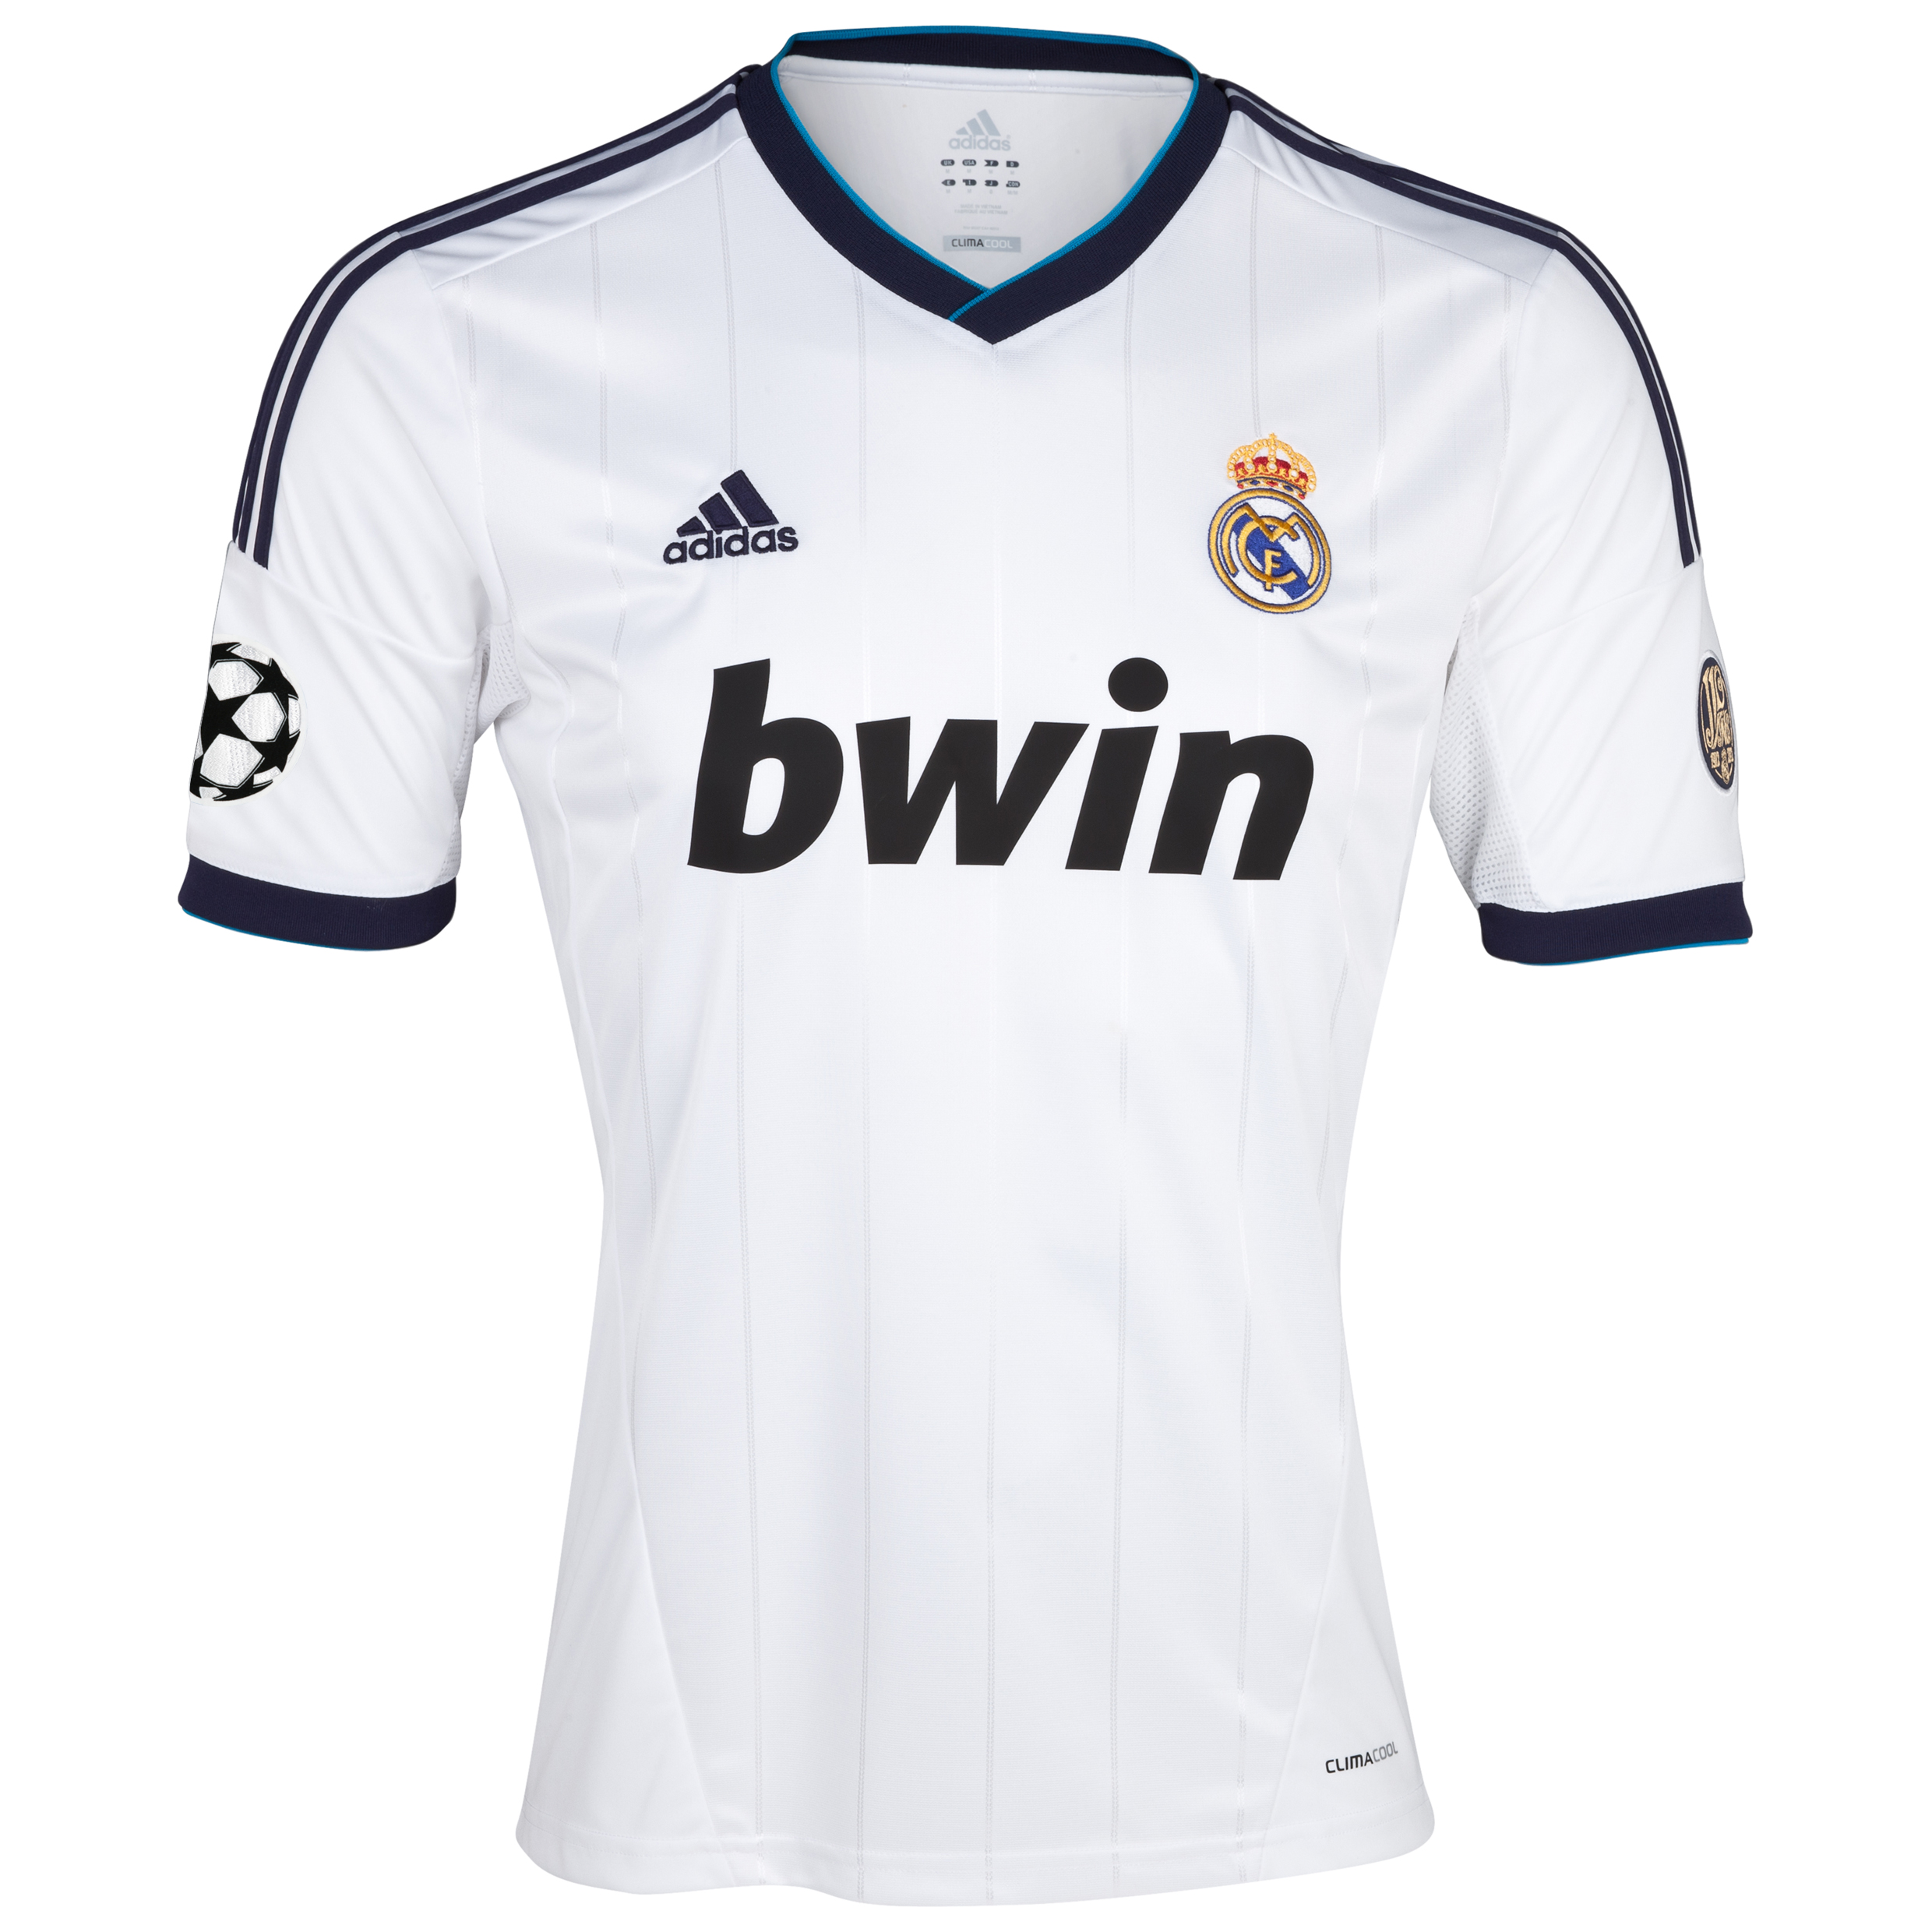 Real Madrid UEFA Champions League Home Shirt 2012/13 - Youths